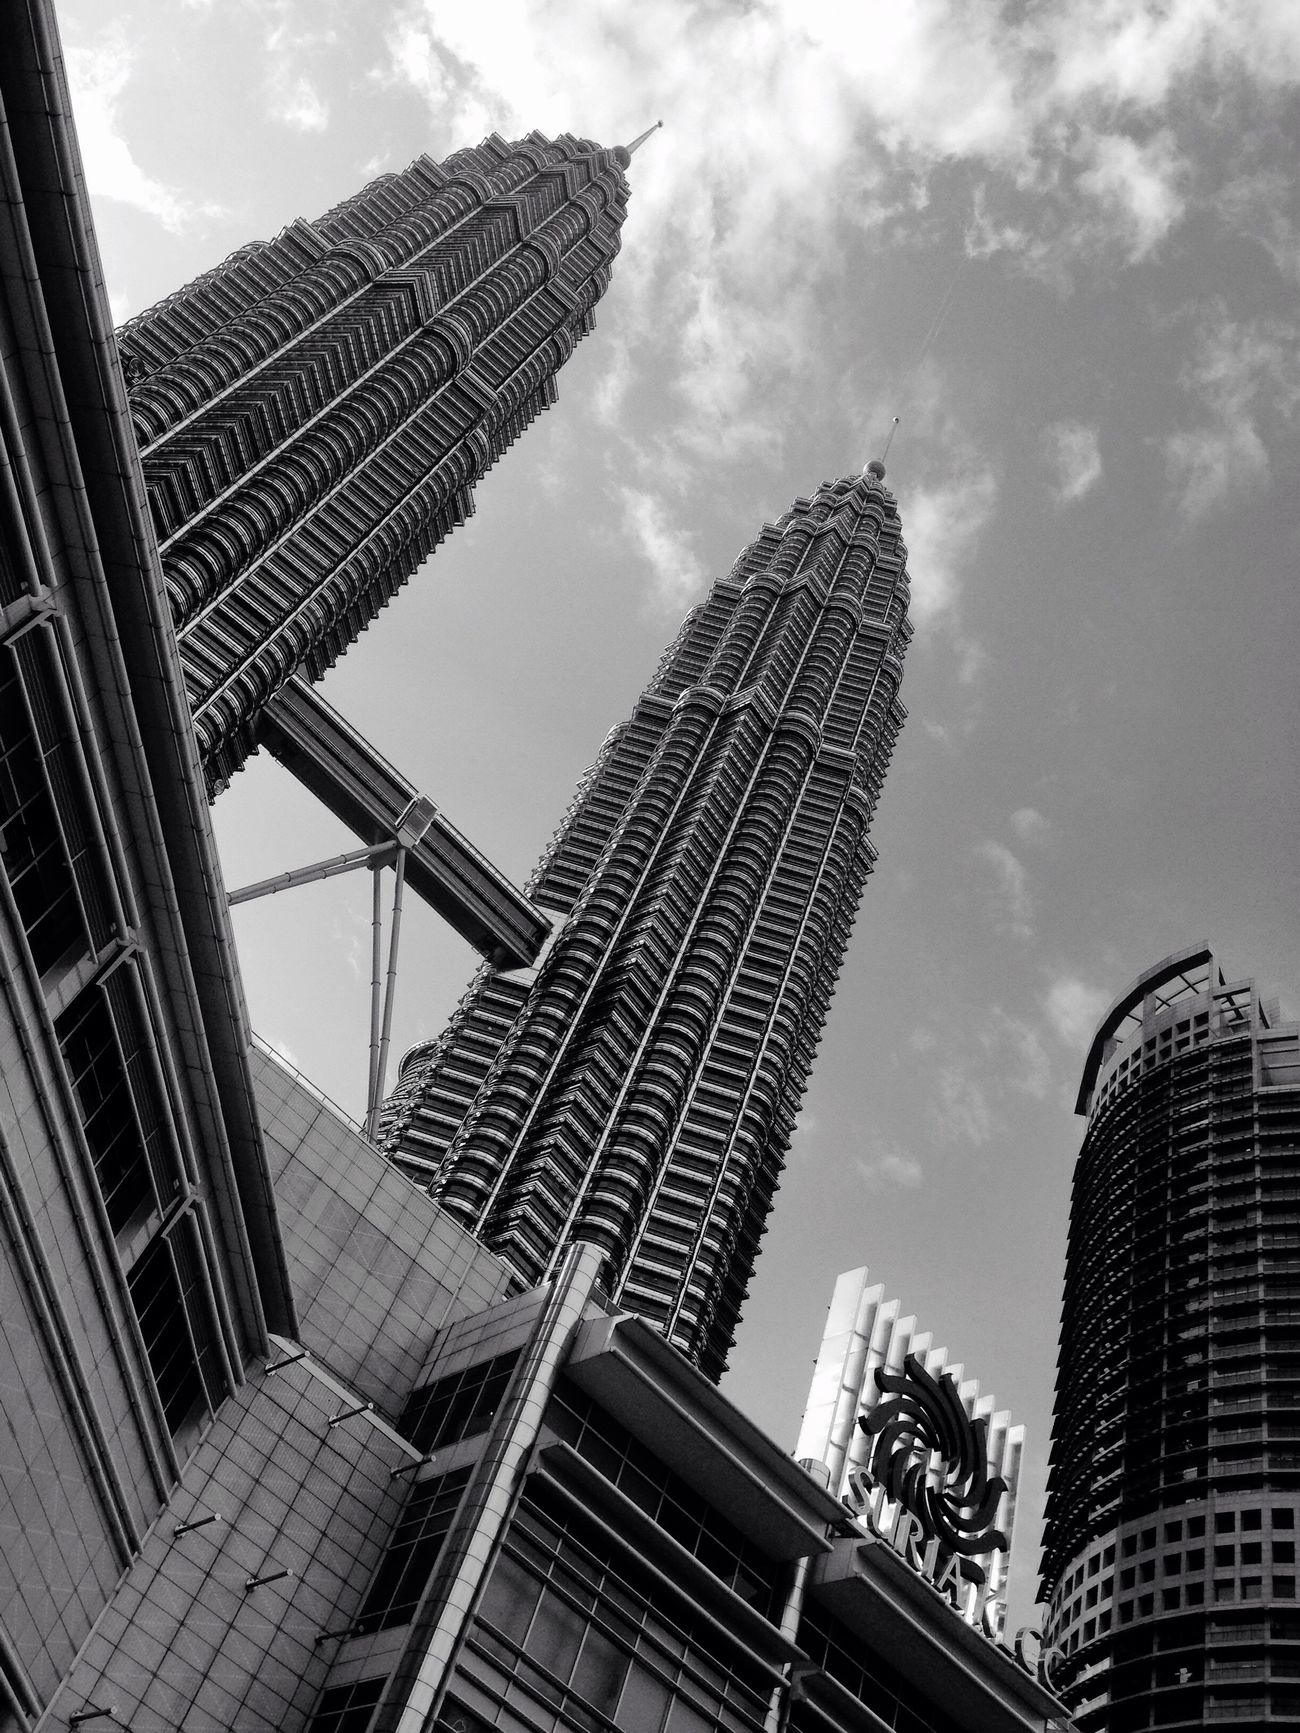 Cityscapes City Monochrome Photography Sky Building Exterior Building Architecture Black And White Photography Blackandwhite Photography Black & White Black And White Blackandwhite Kualalumpur Kuala Lumpur Malaysia  Kuala Lumpur Malaysia Klcc Twin Towers KLCC Twin Towers Twin Towers Malaysia KLCC Tower KLCC Park Two Is Better Than One Battle Of The Cities Dramatic Angles